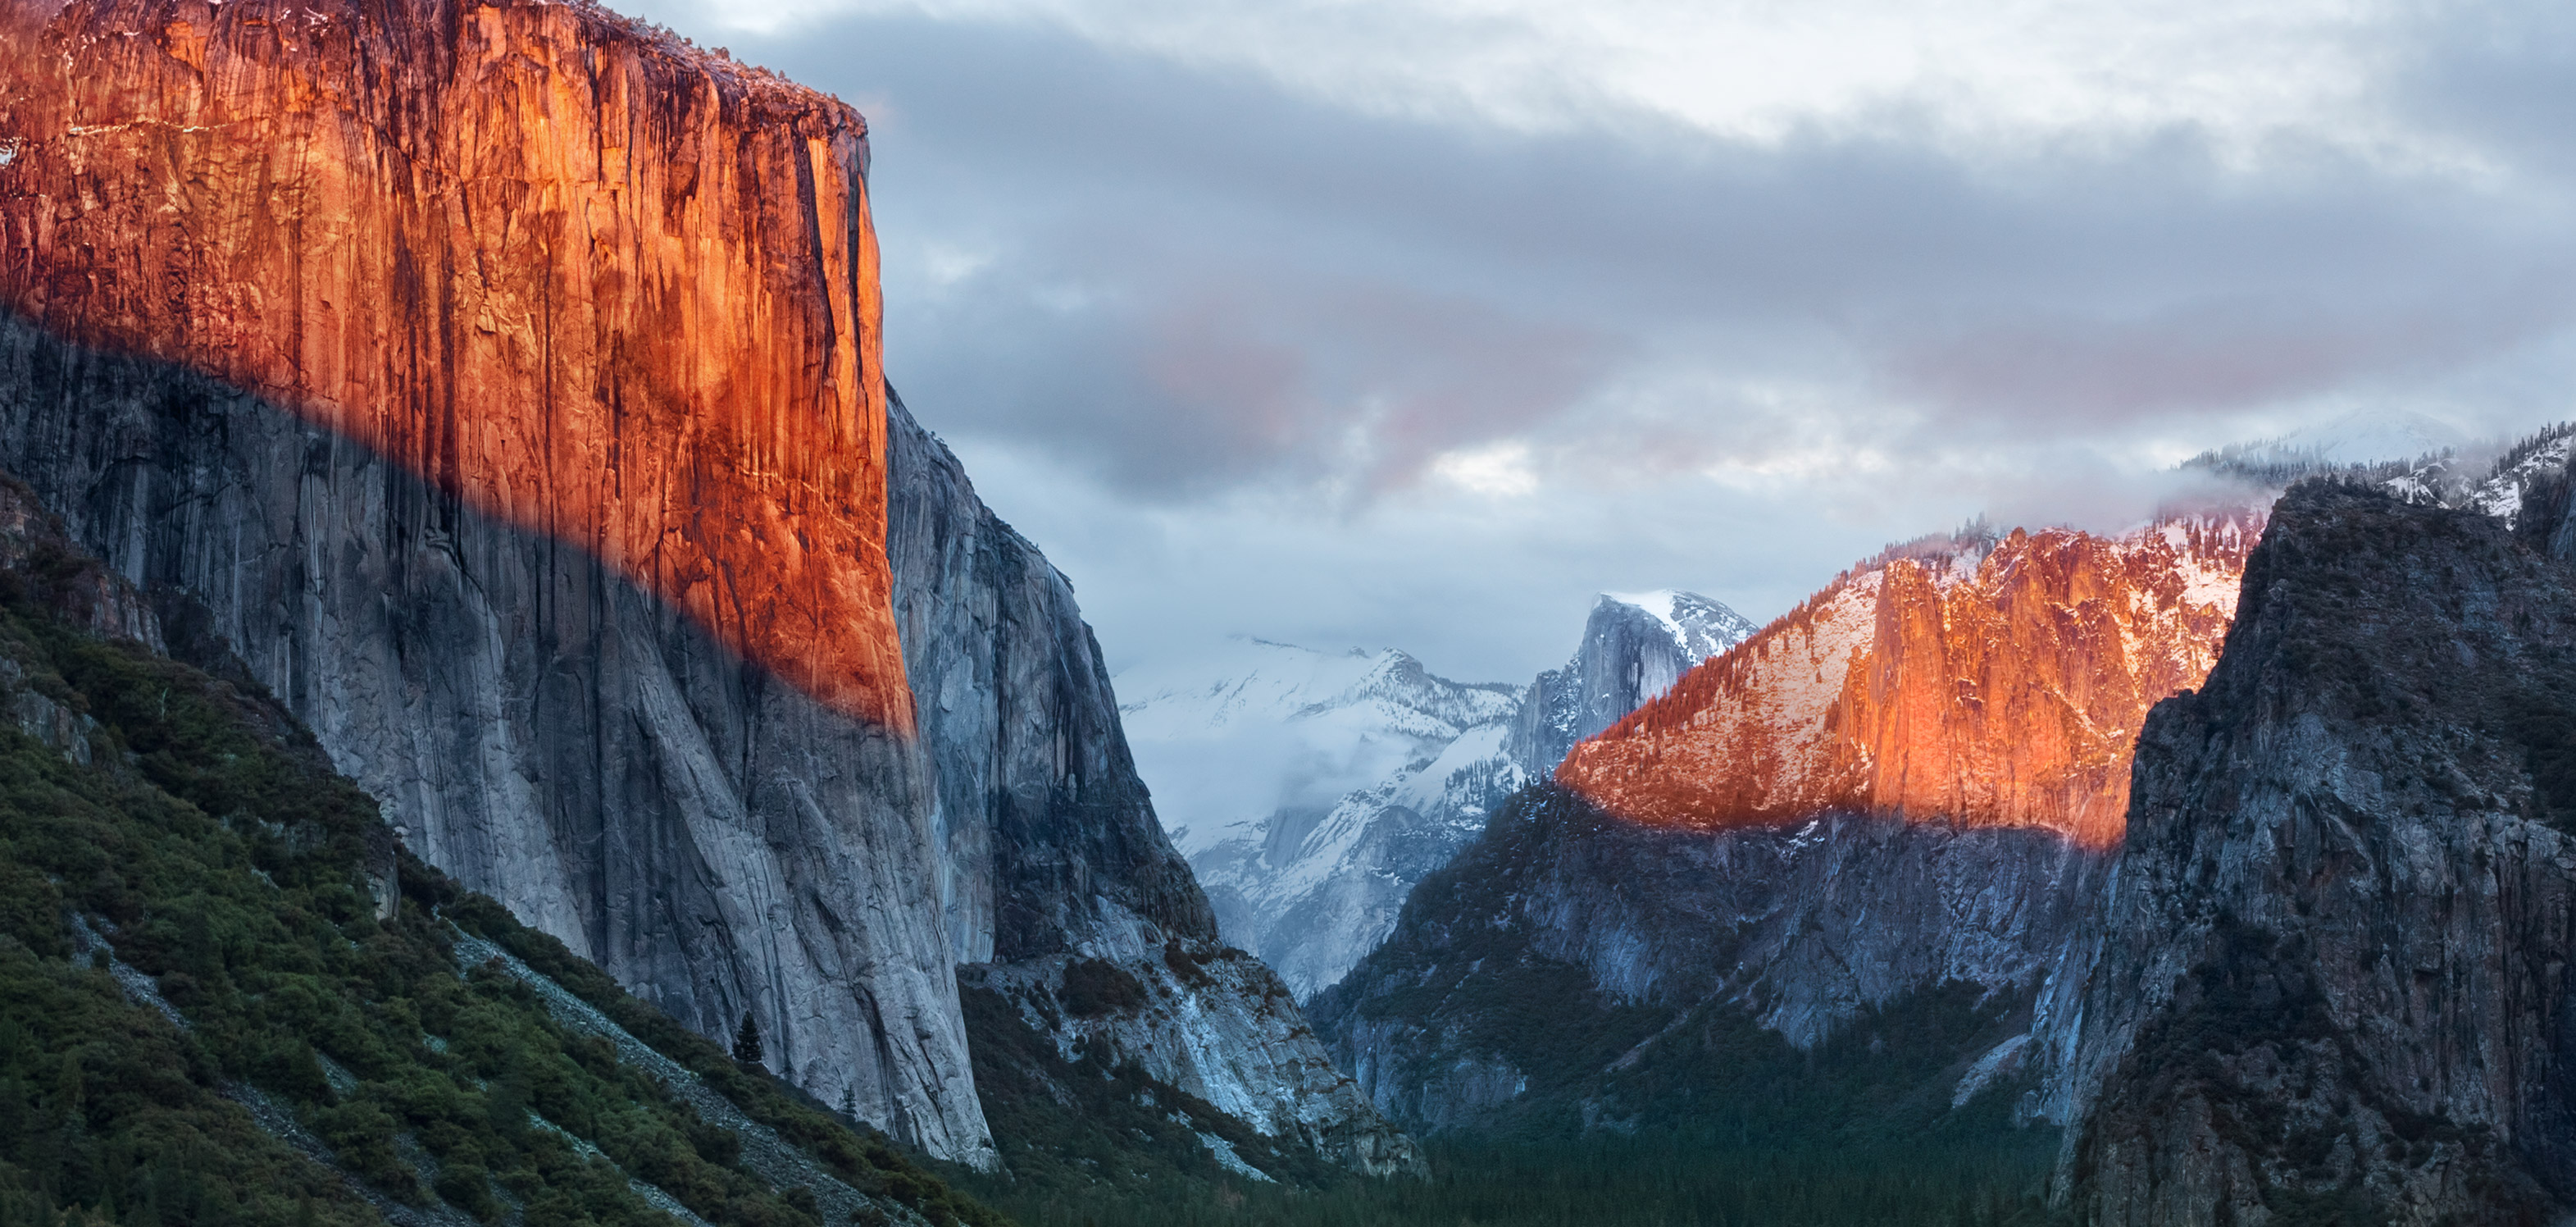 How to get the OS X 10 11 El Capitan wallpaper right now